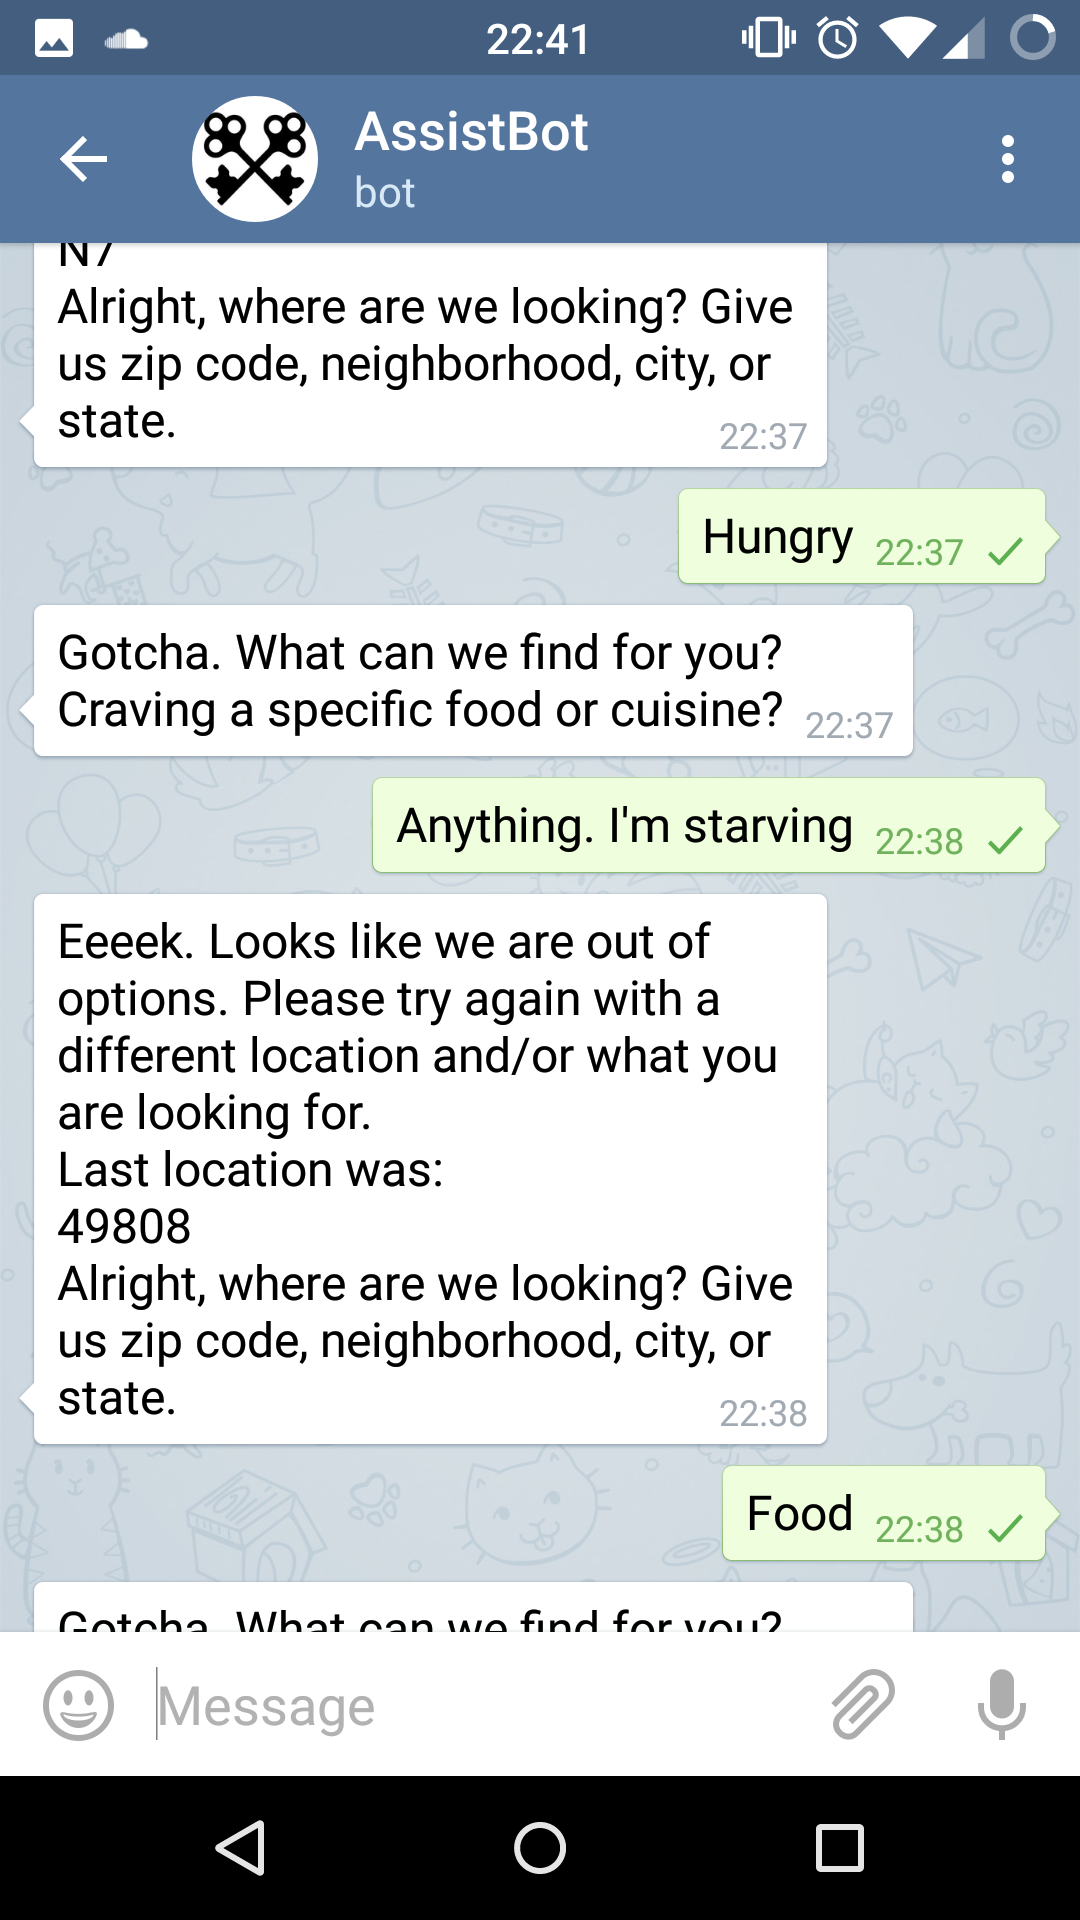 Chats With Bots  BBH Labs  Medium - Us zip codes list by city